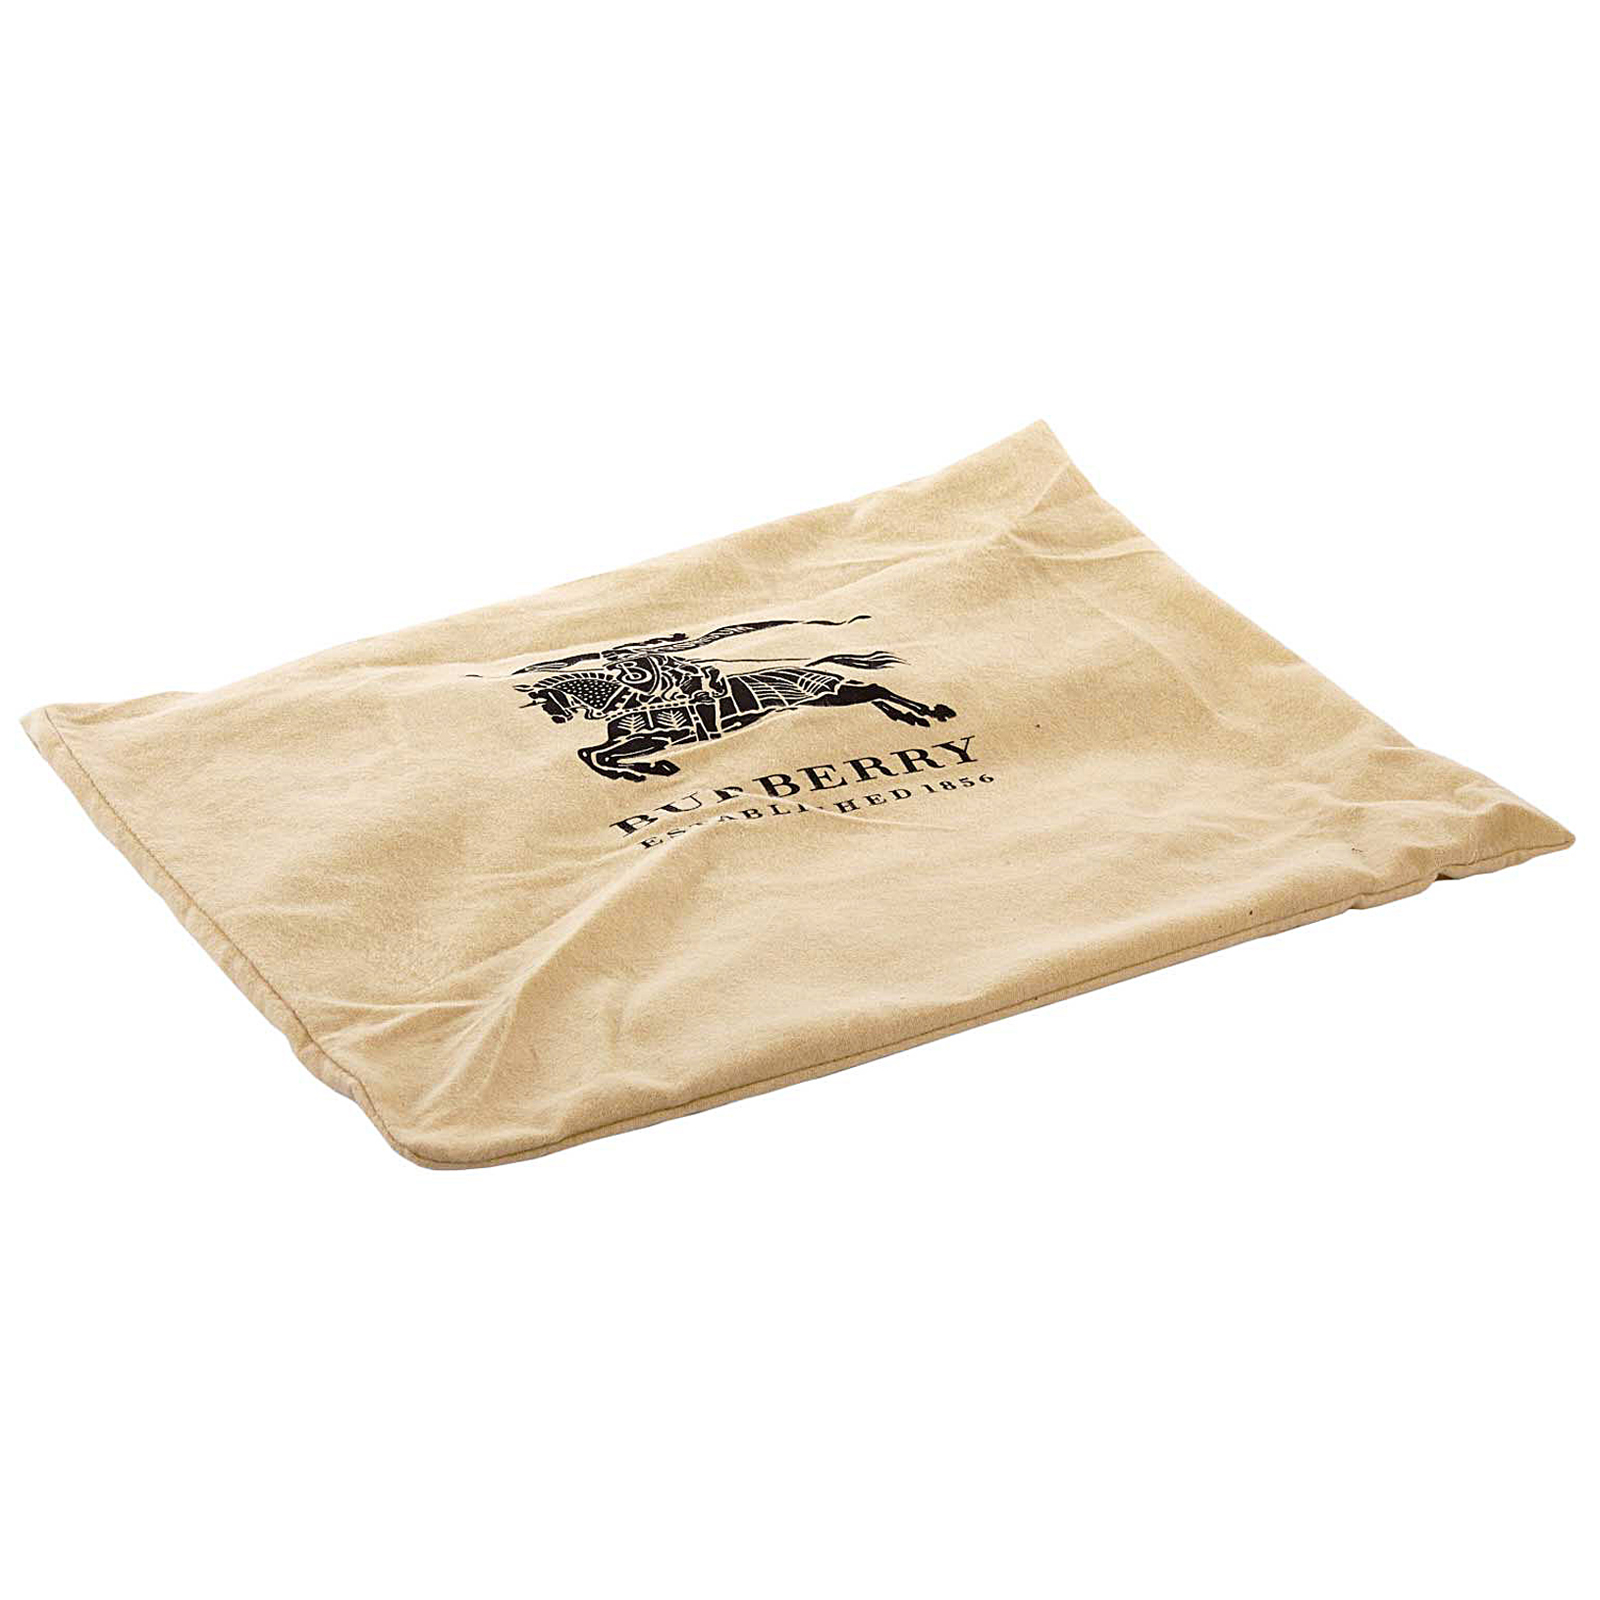 Borsa uomo a tracolla borsello  horseferry check